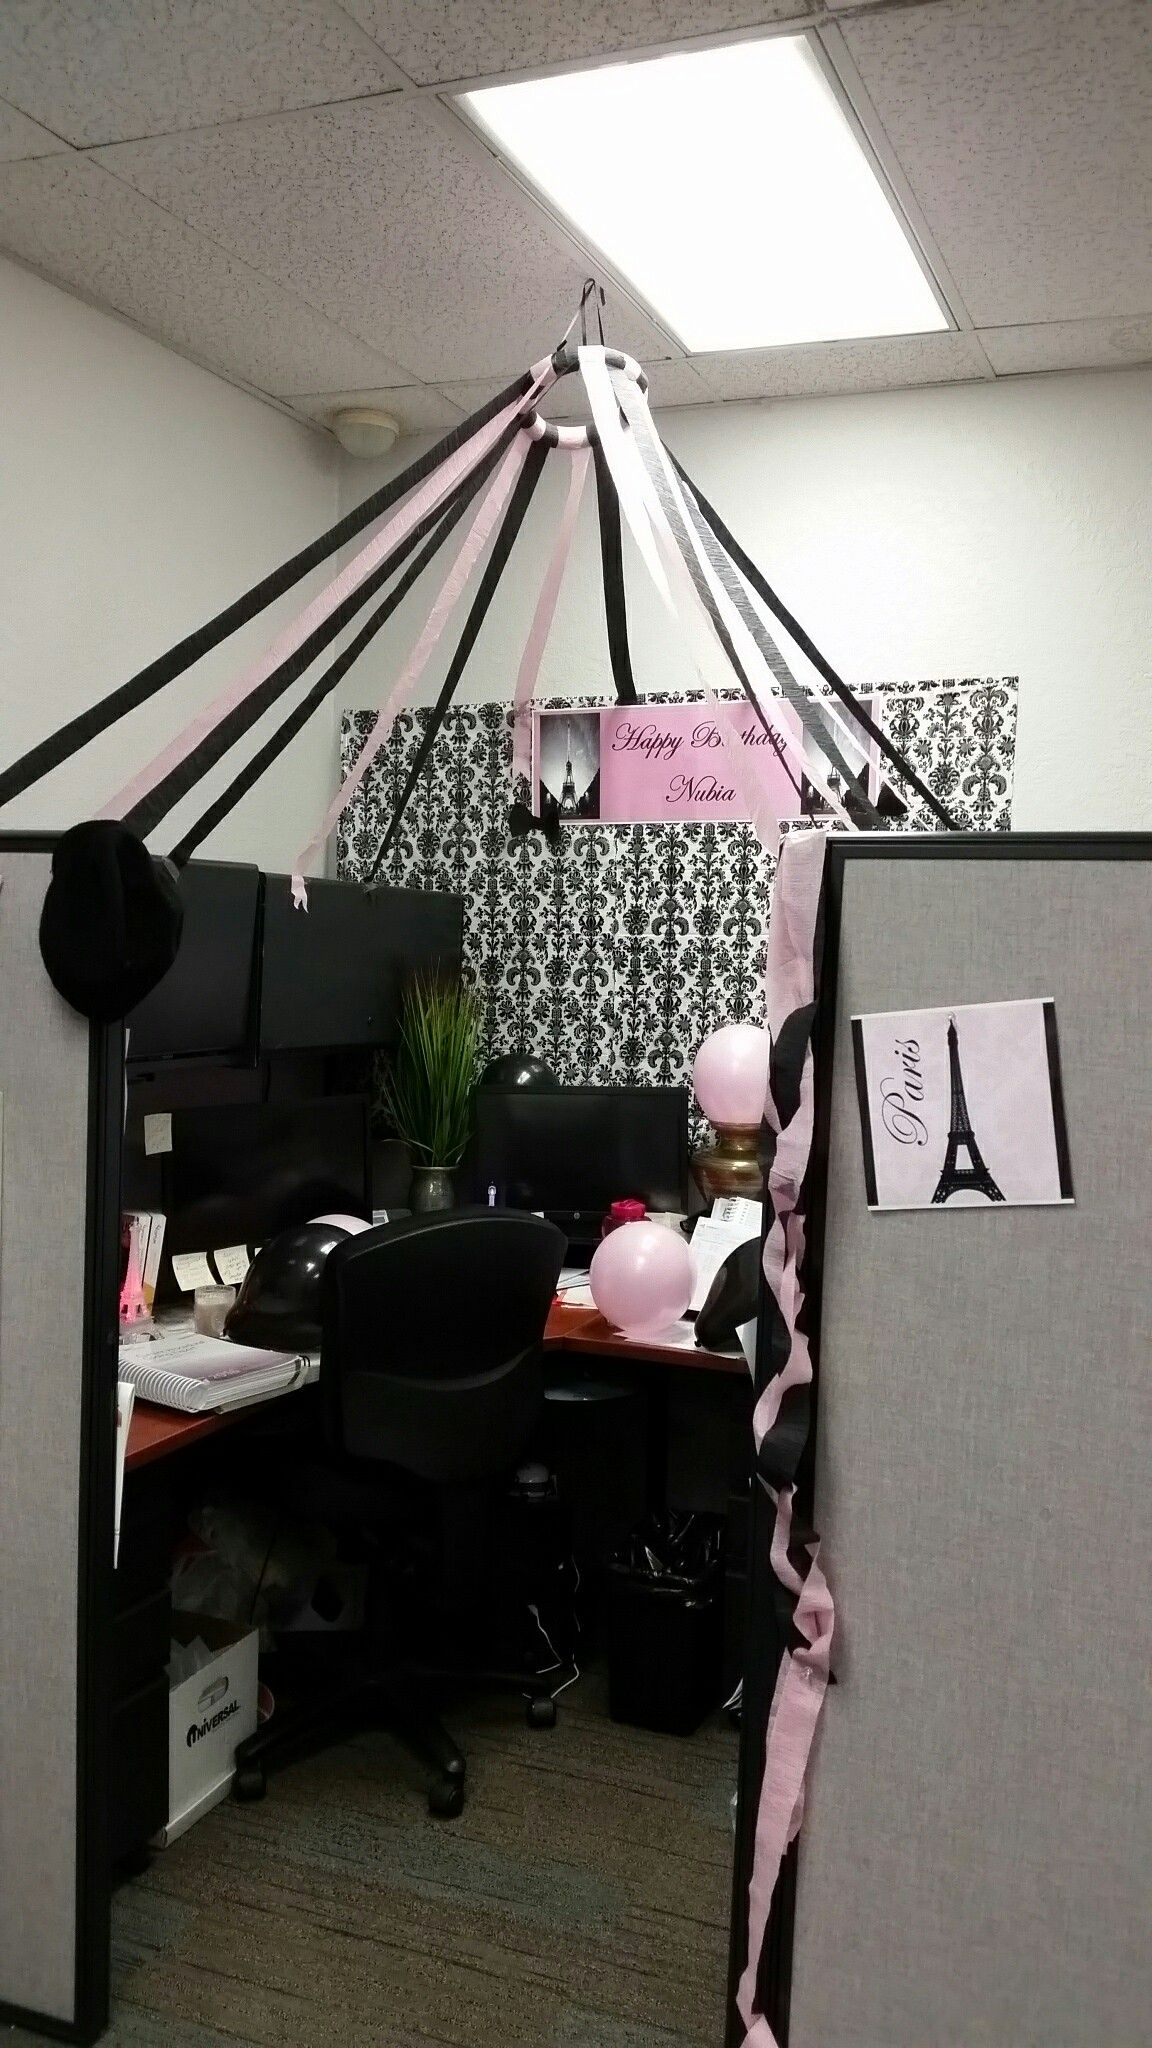 Birthday Cubicle Decoration Ideas Also Best Office Images Shark Rh Maria Olvera Molvera